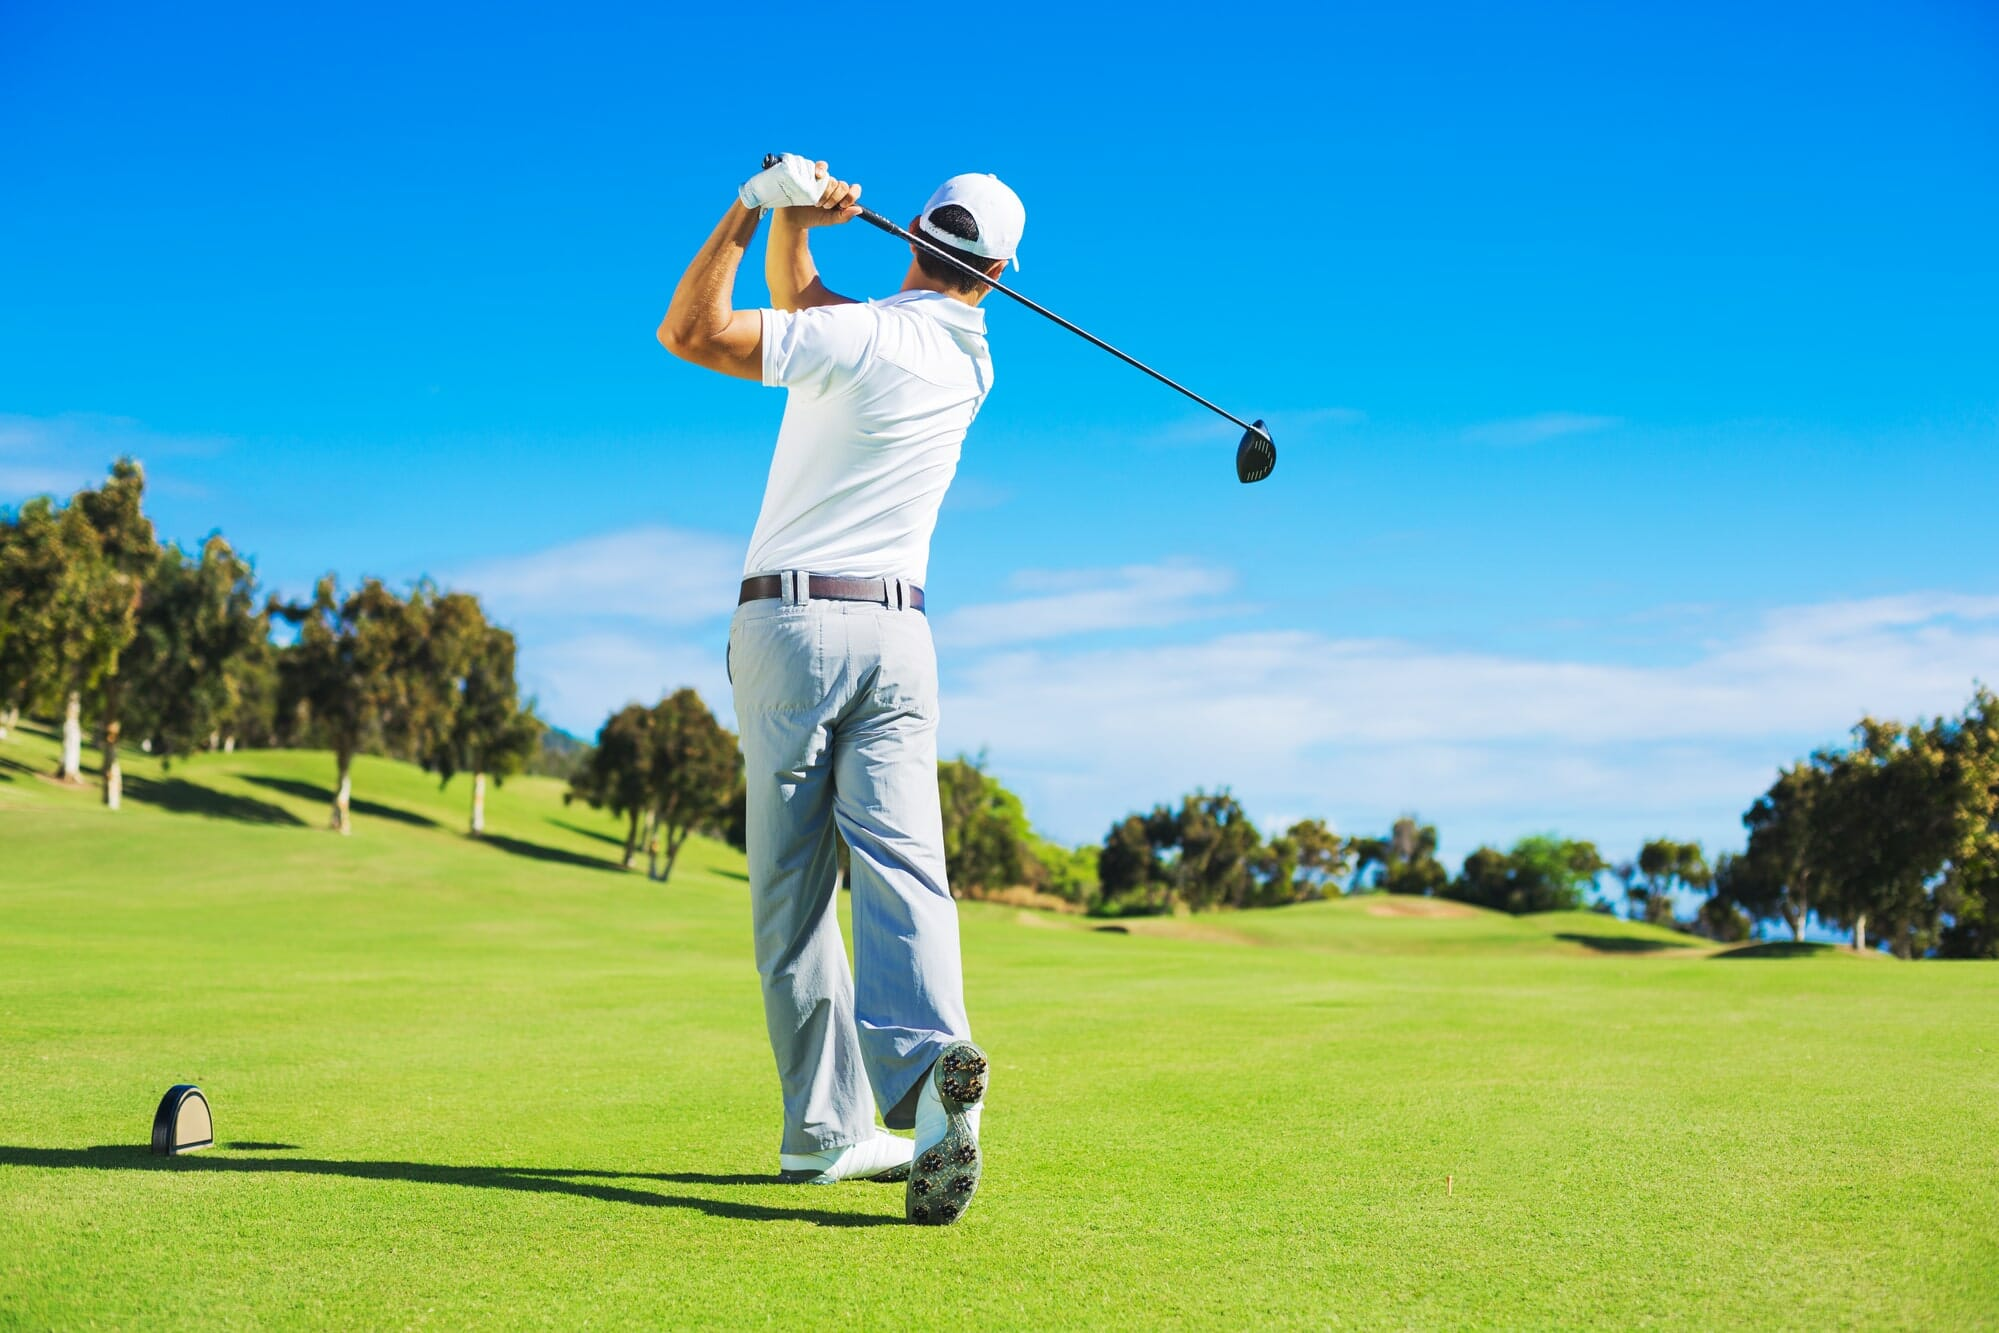 How long does it take to get good at golf